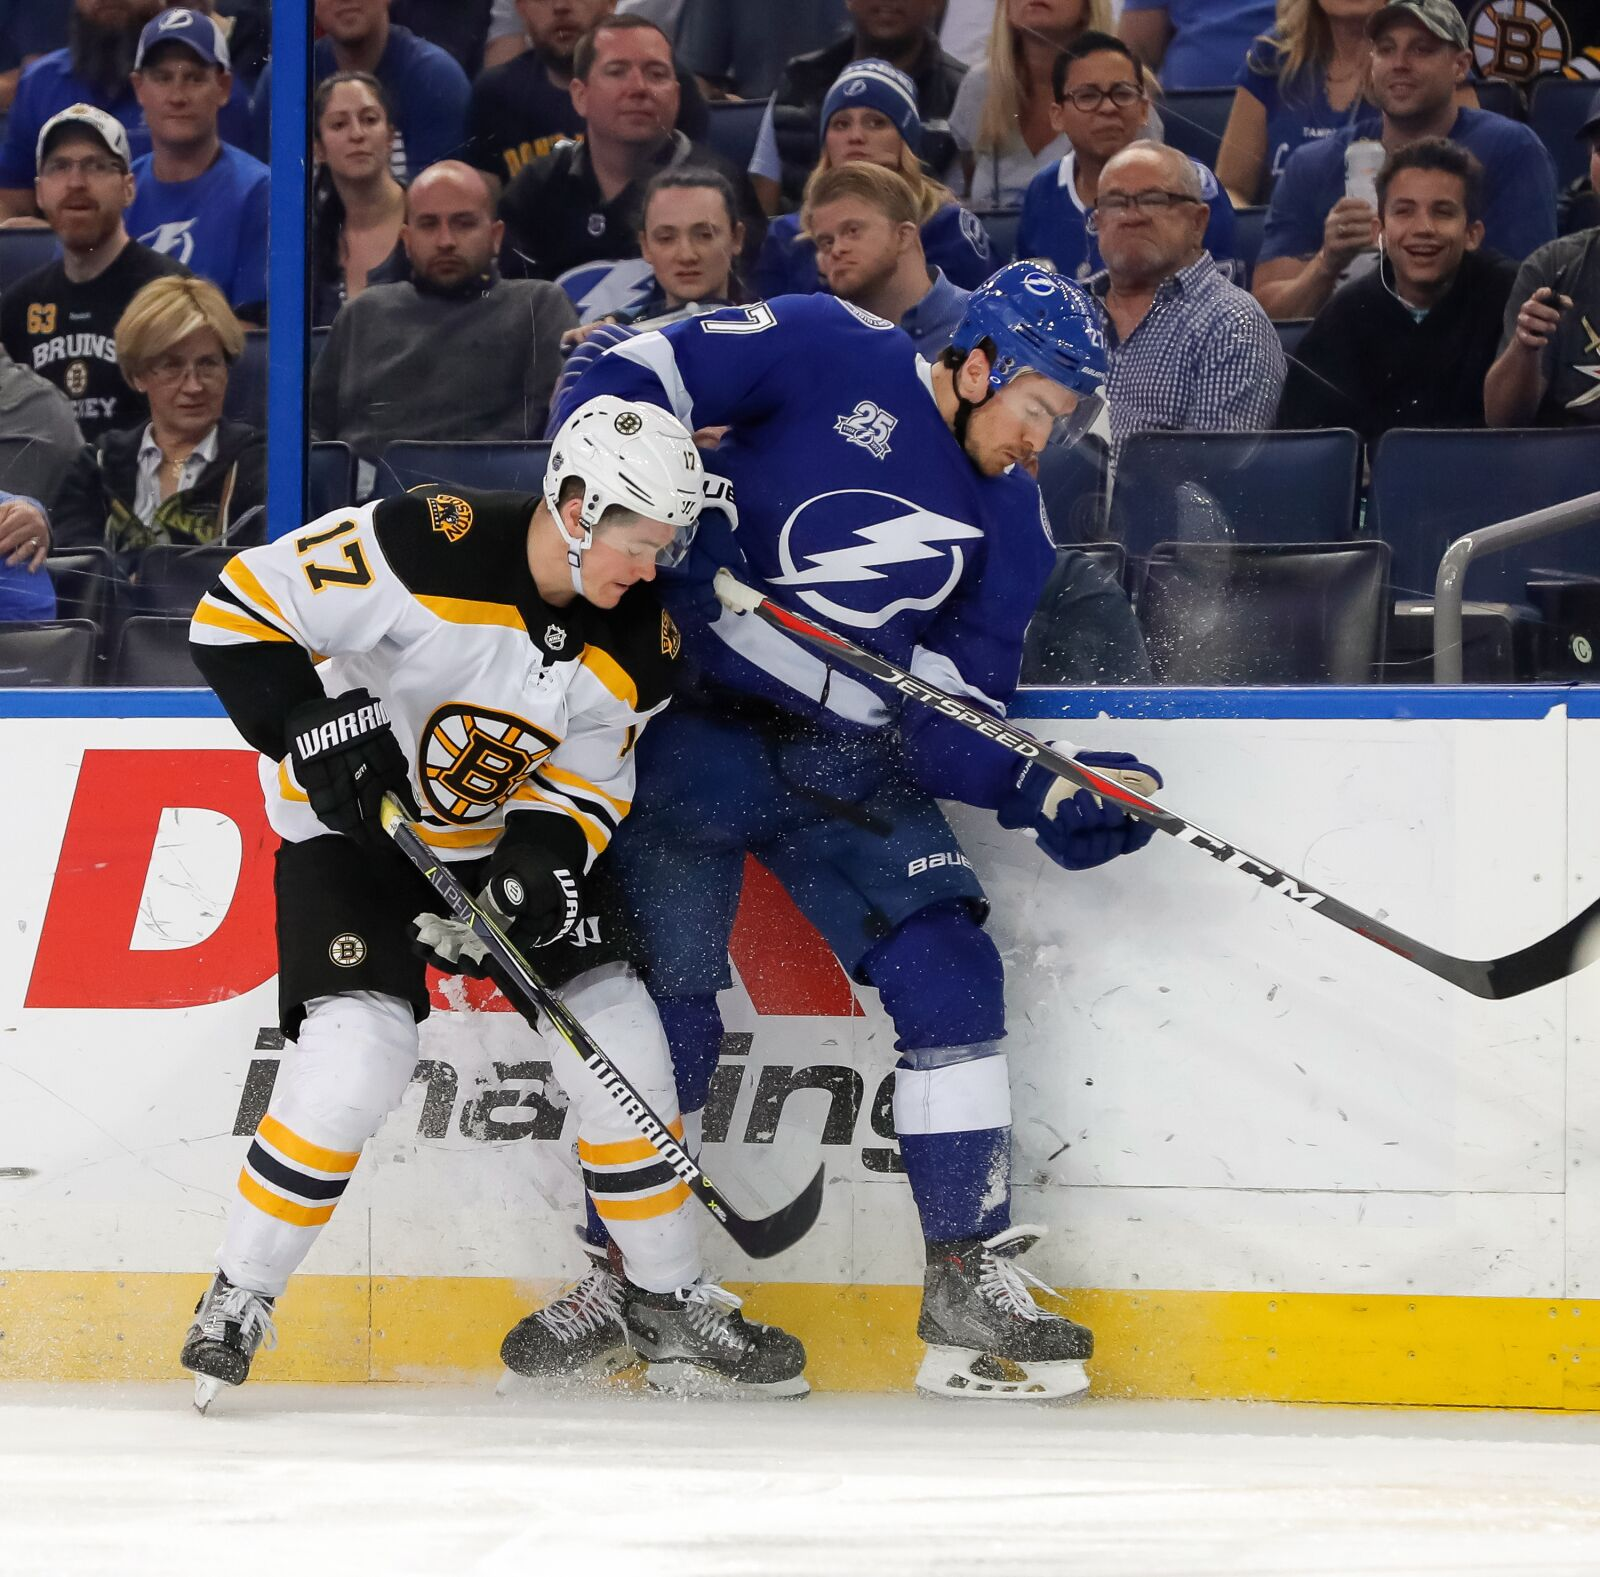 Stanley Cup Playoffs 2018: Lightning Vs. Bruins TV Schedule